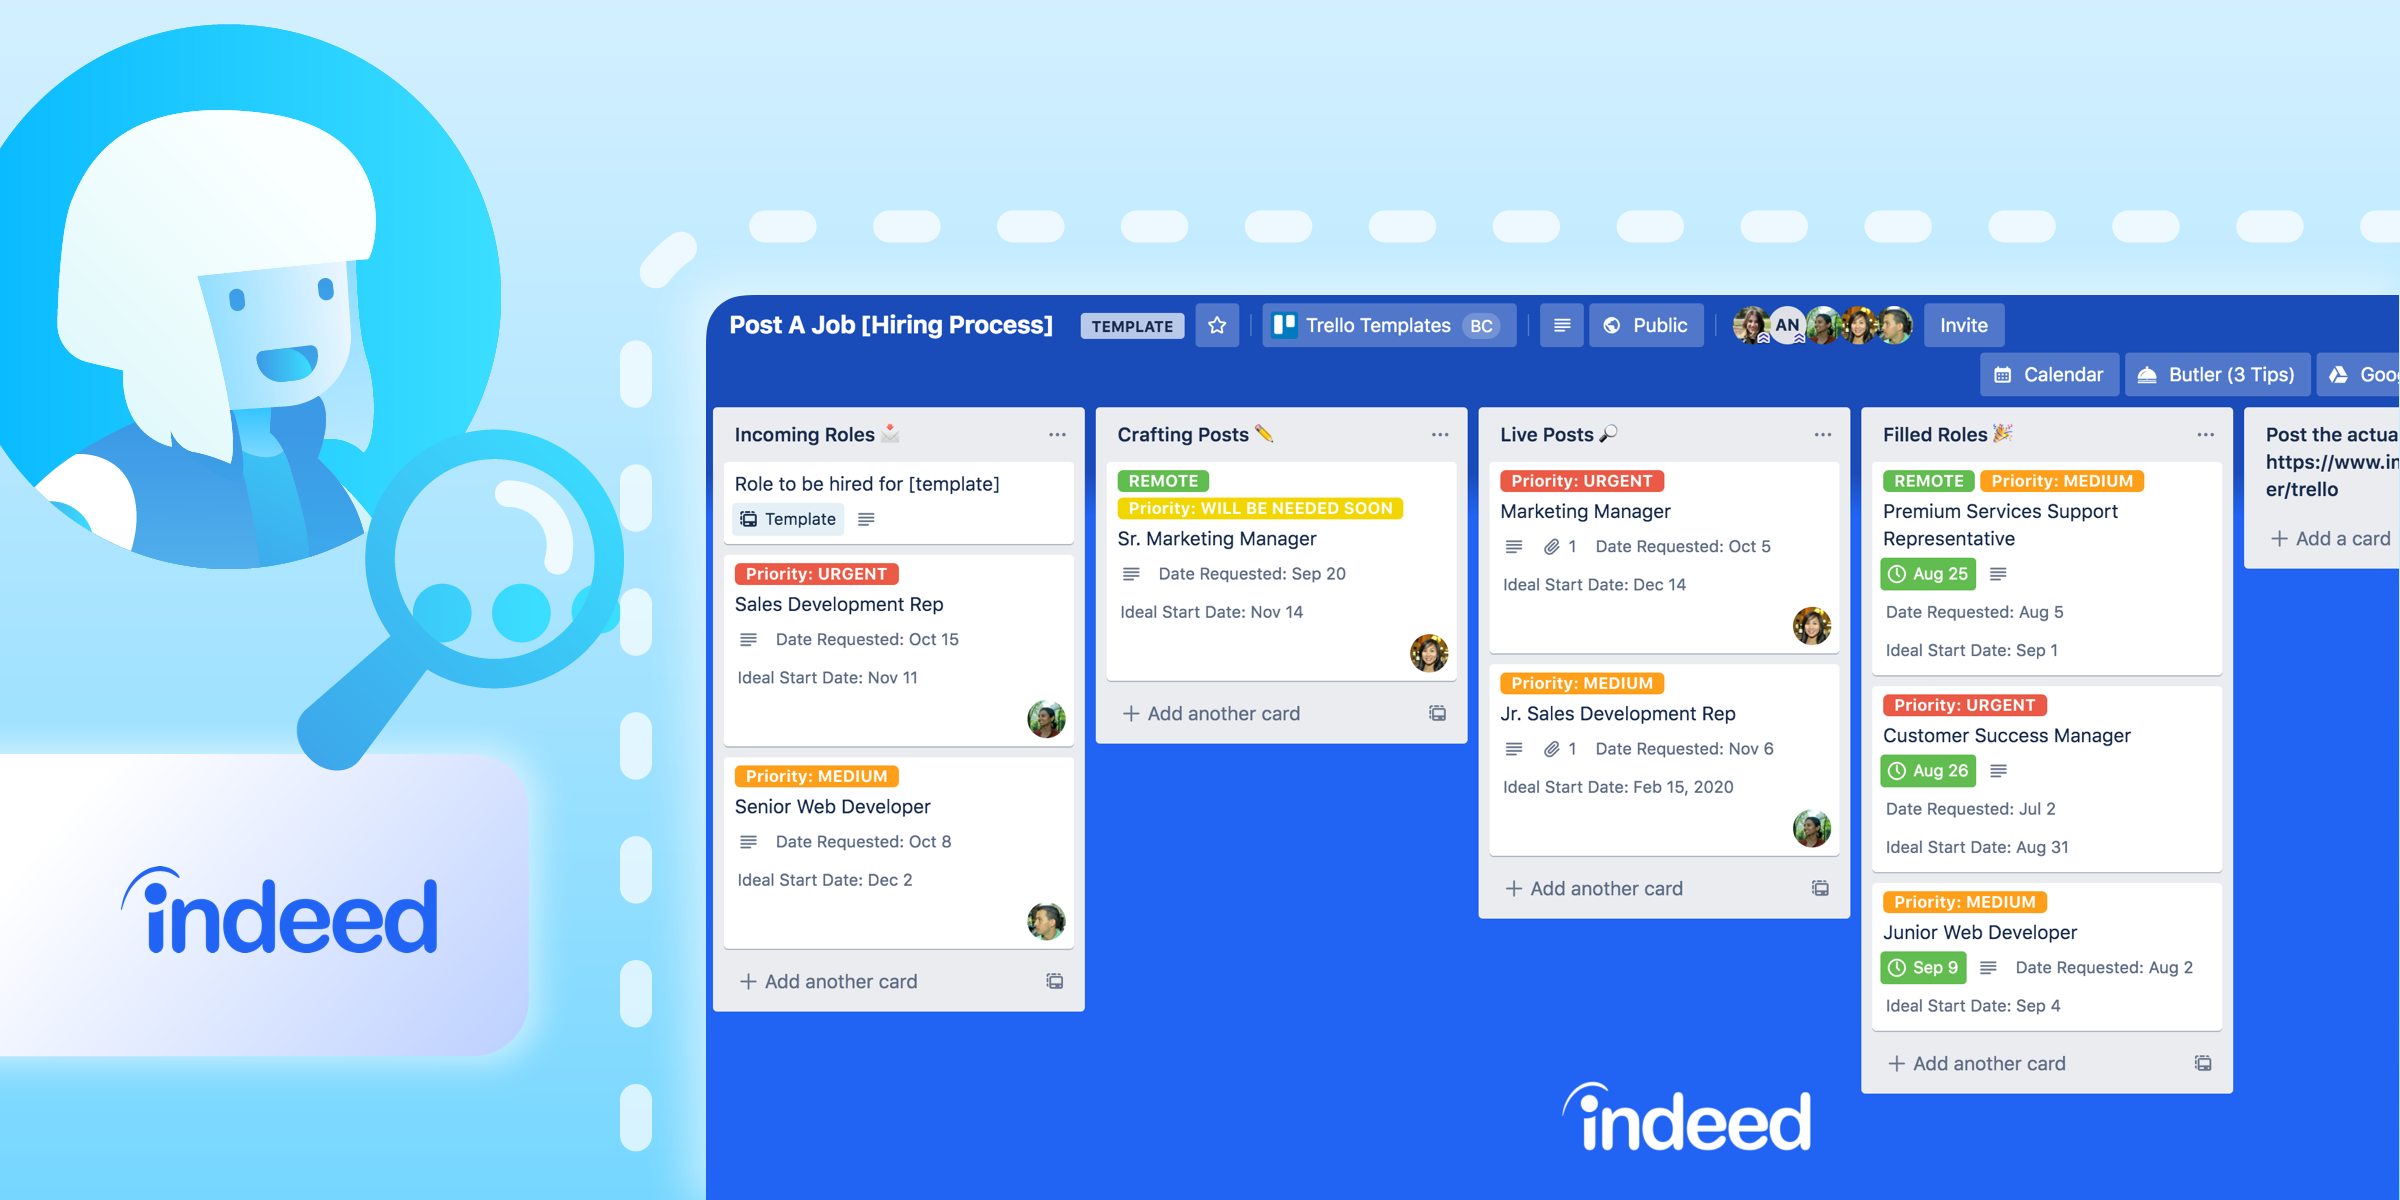 How To Use Trello And Indeed To Hire A Dream Team